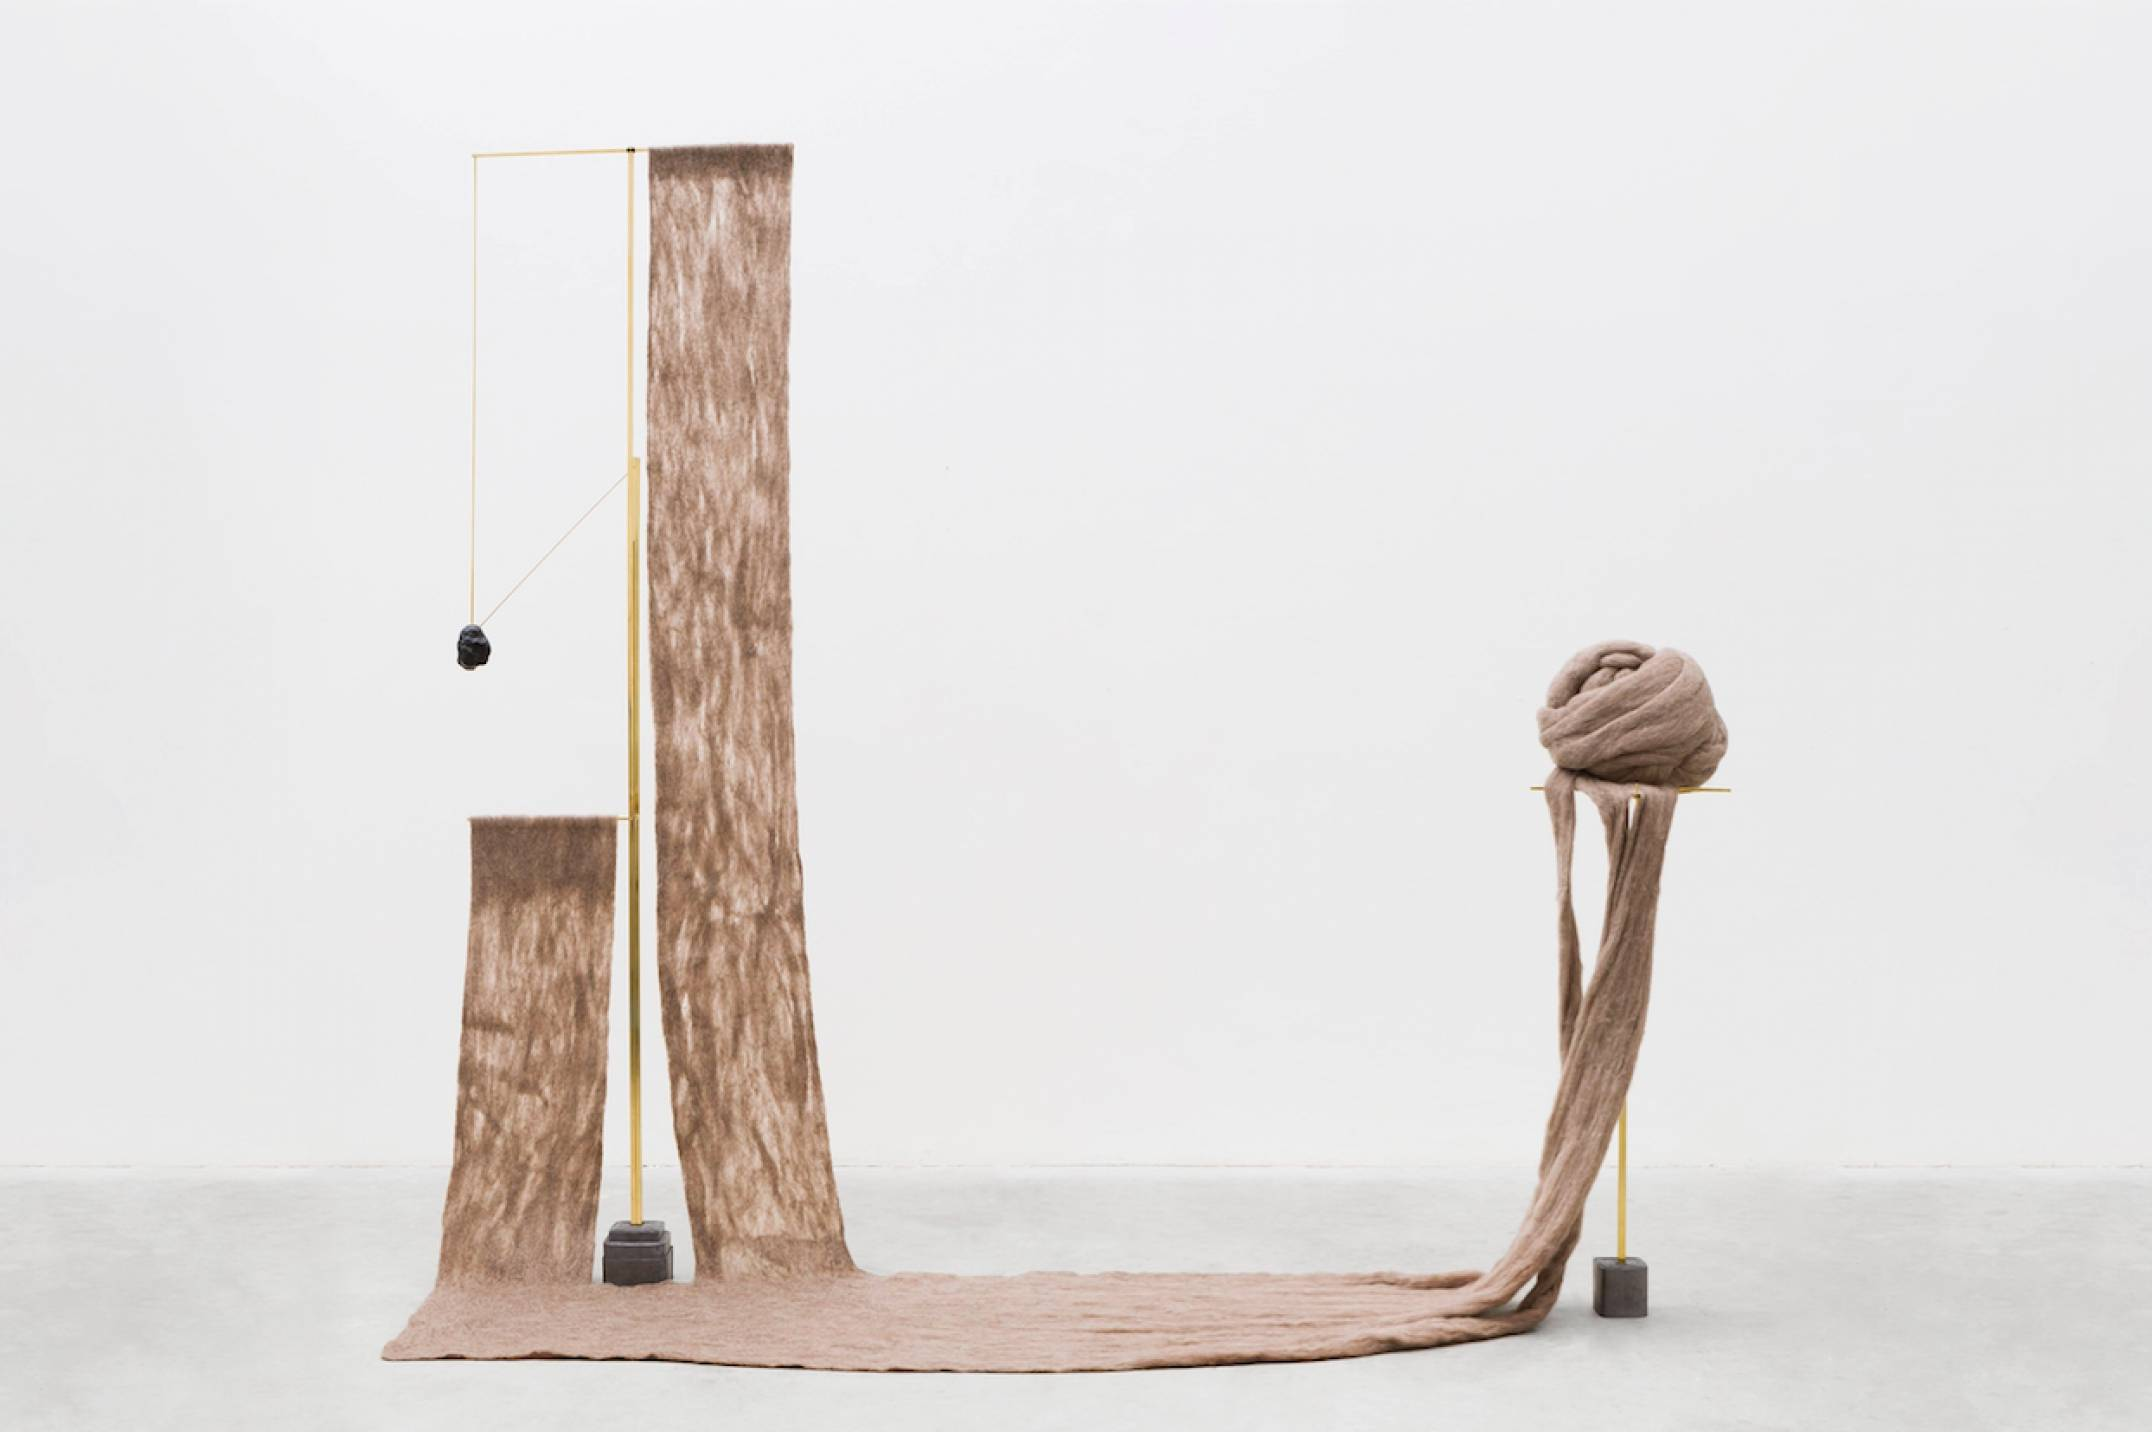 Paloma Bosquê, <em>Two Stones</em>, 2017, lead sheet, brass rods, handfelted wool and beeswax, 202 × 212 × 34 cm - Mendes Wood DM